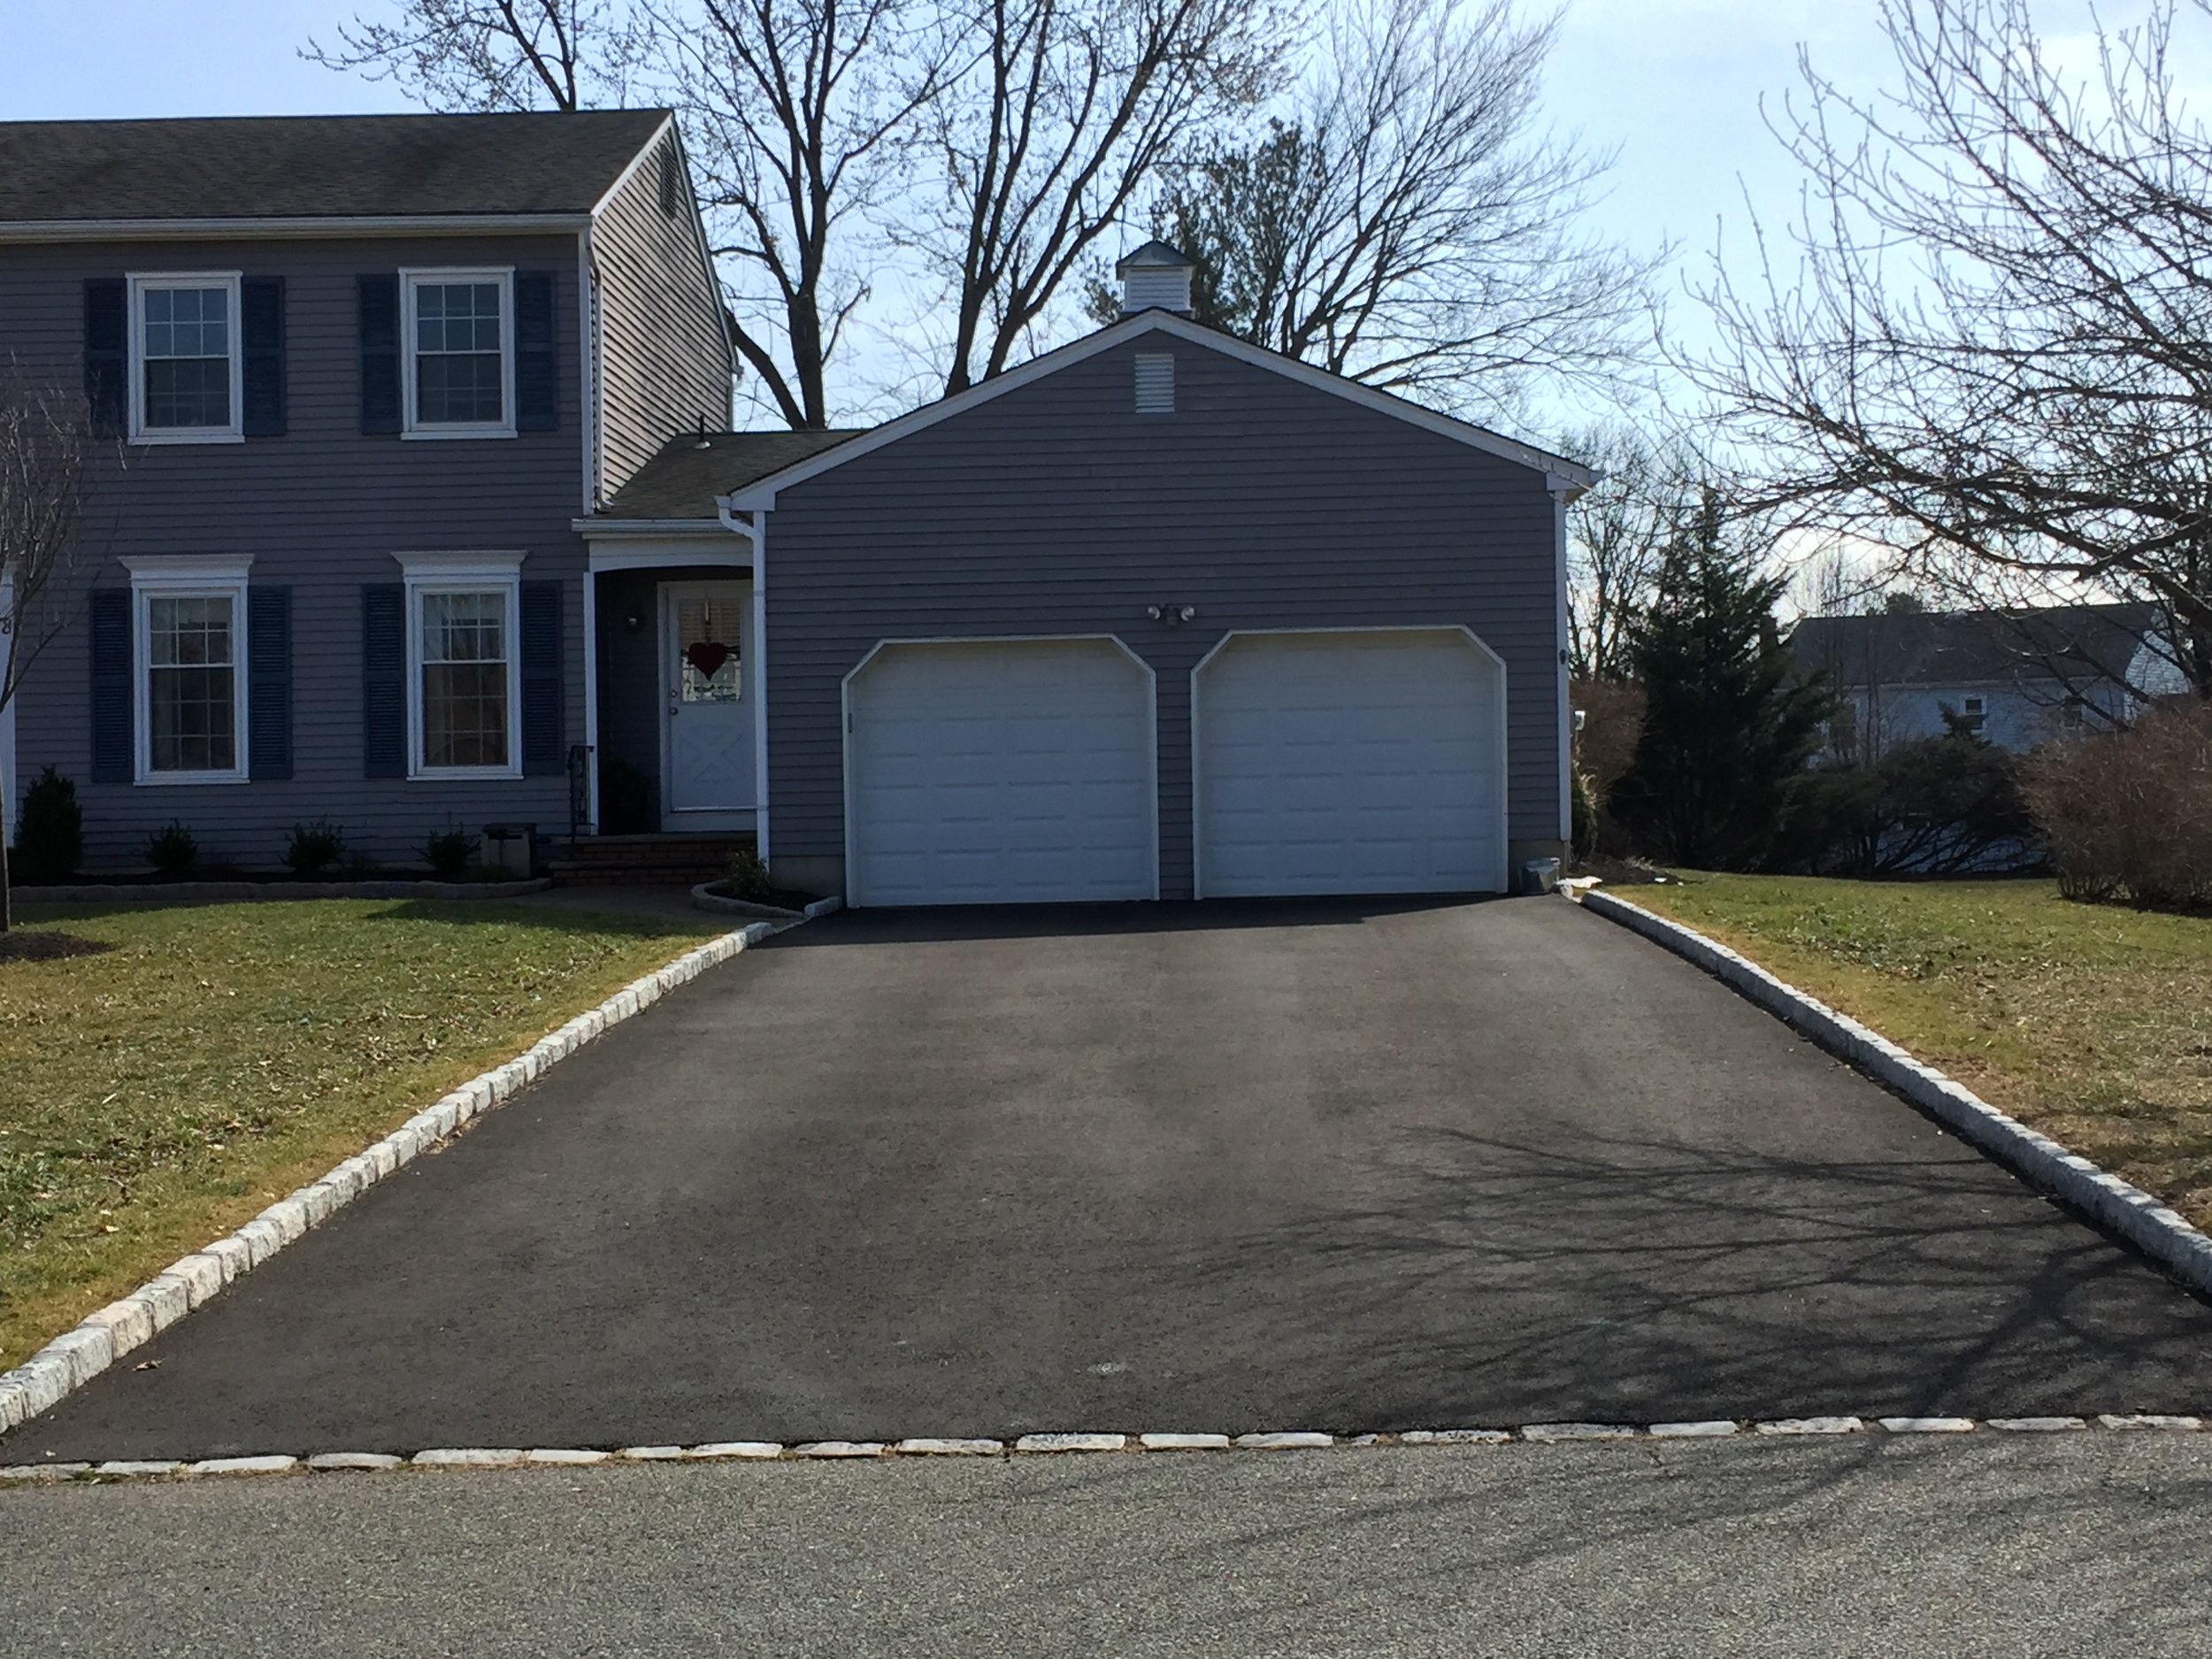 Two Car Garage Driveway Paving and Curbing Contractor in Skillman, NJ